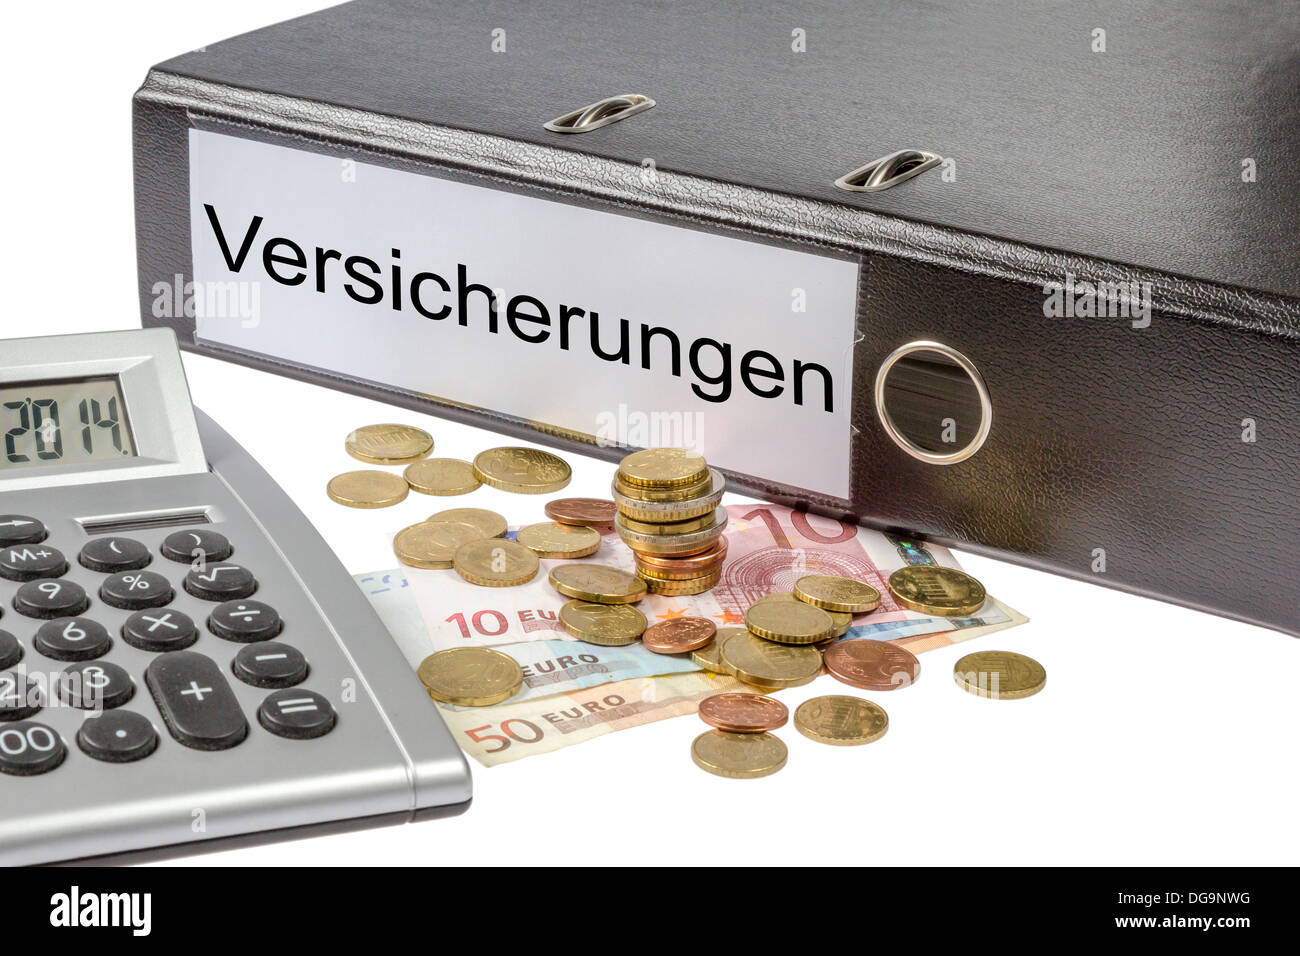 A Binder labeled wit the word Versicherungen (German insurance), calculator and european currency isolated on white Stock Photo